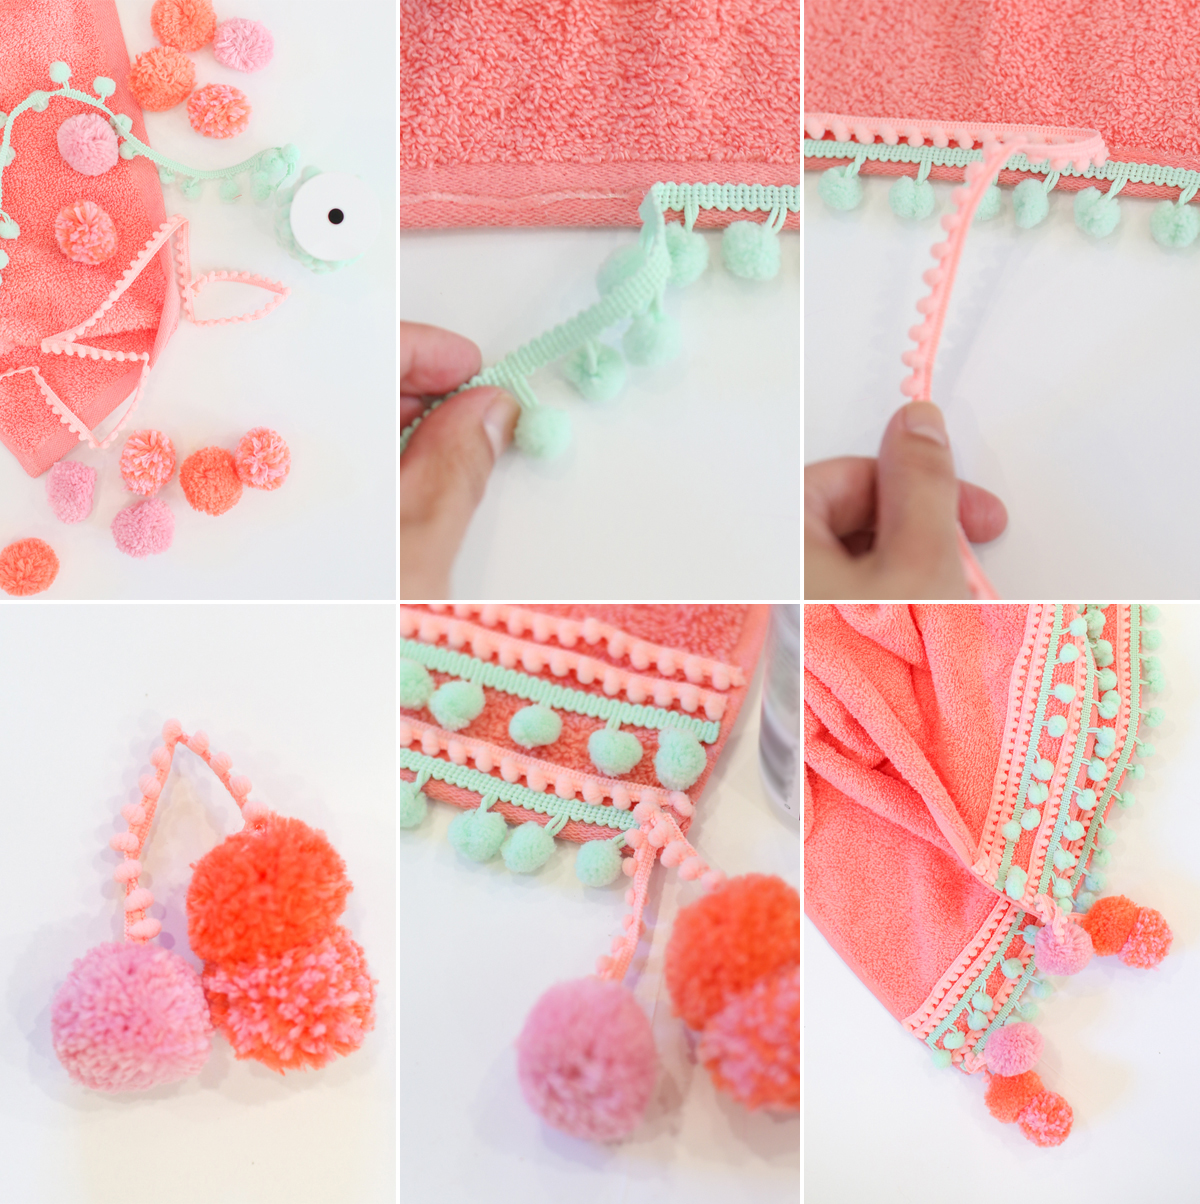 diy-pompom-trim-beach-towel1.jpg